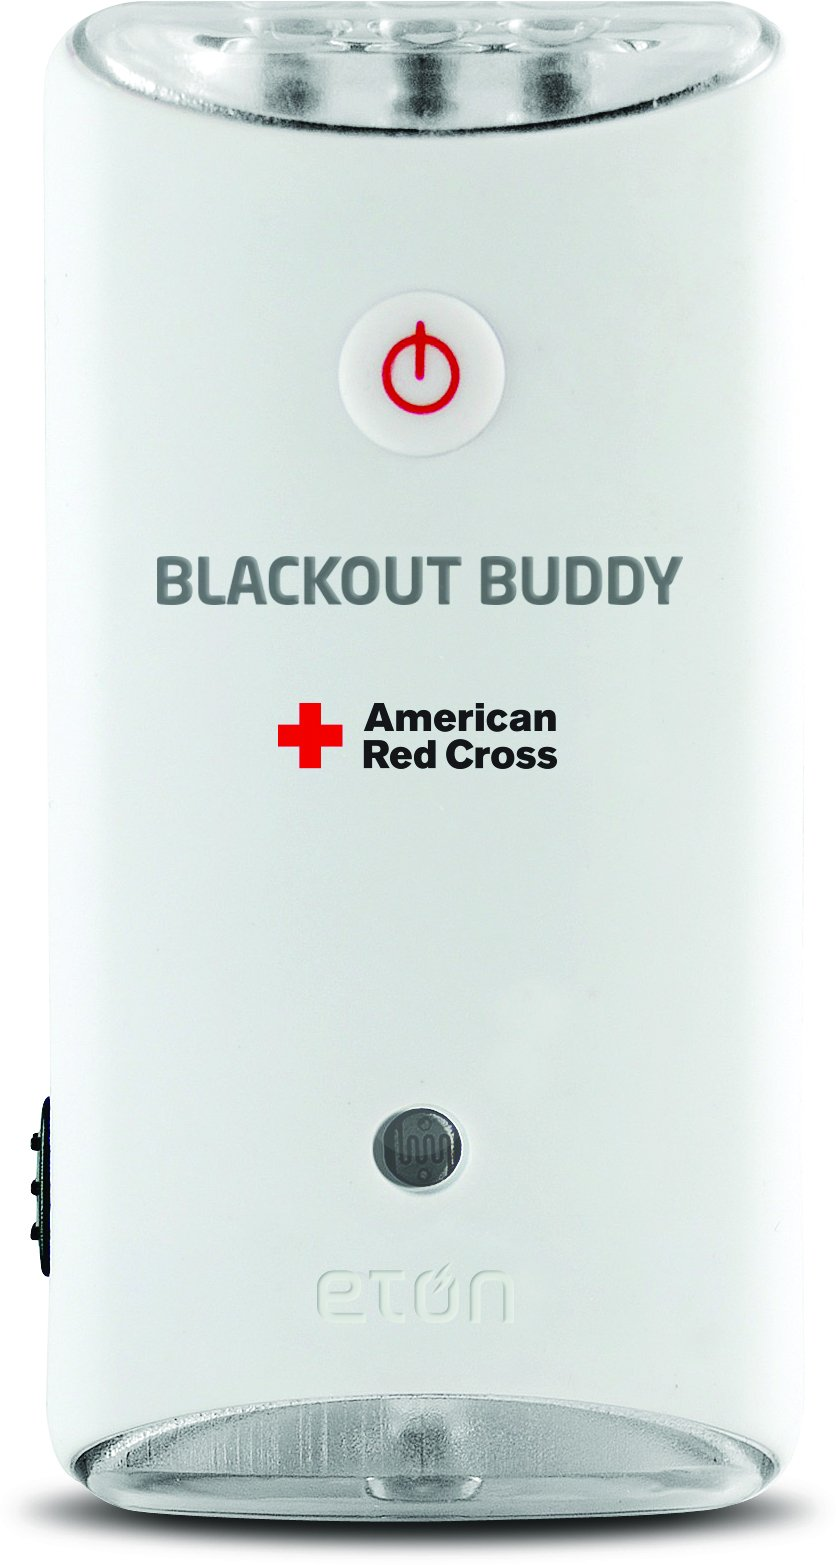 American Red Cross Blackout Buddy the Emergency LED Flashlight, Blackout Alert and Nightlight, Lights Up Automatically When There is a Power Failure, ARCBB200W-SNG